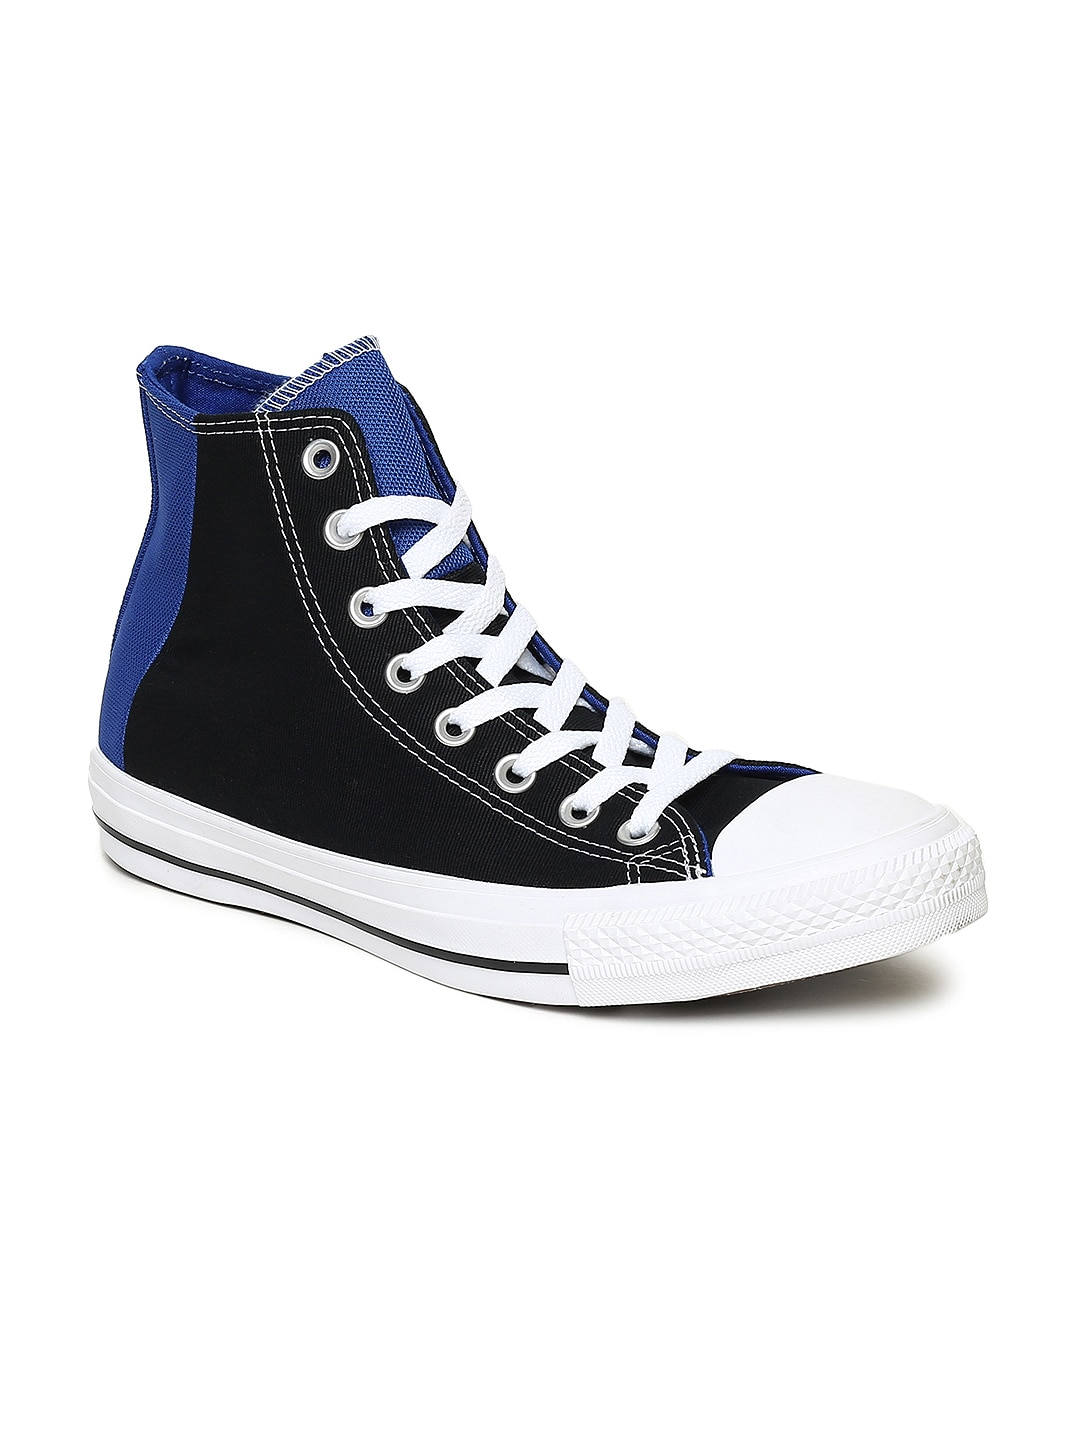 42999e8d07f8 Converse Shoes - Buy Converse Canvas Shoes   Sneakers Online